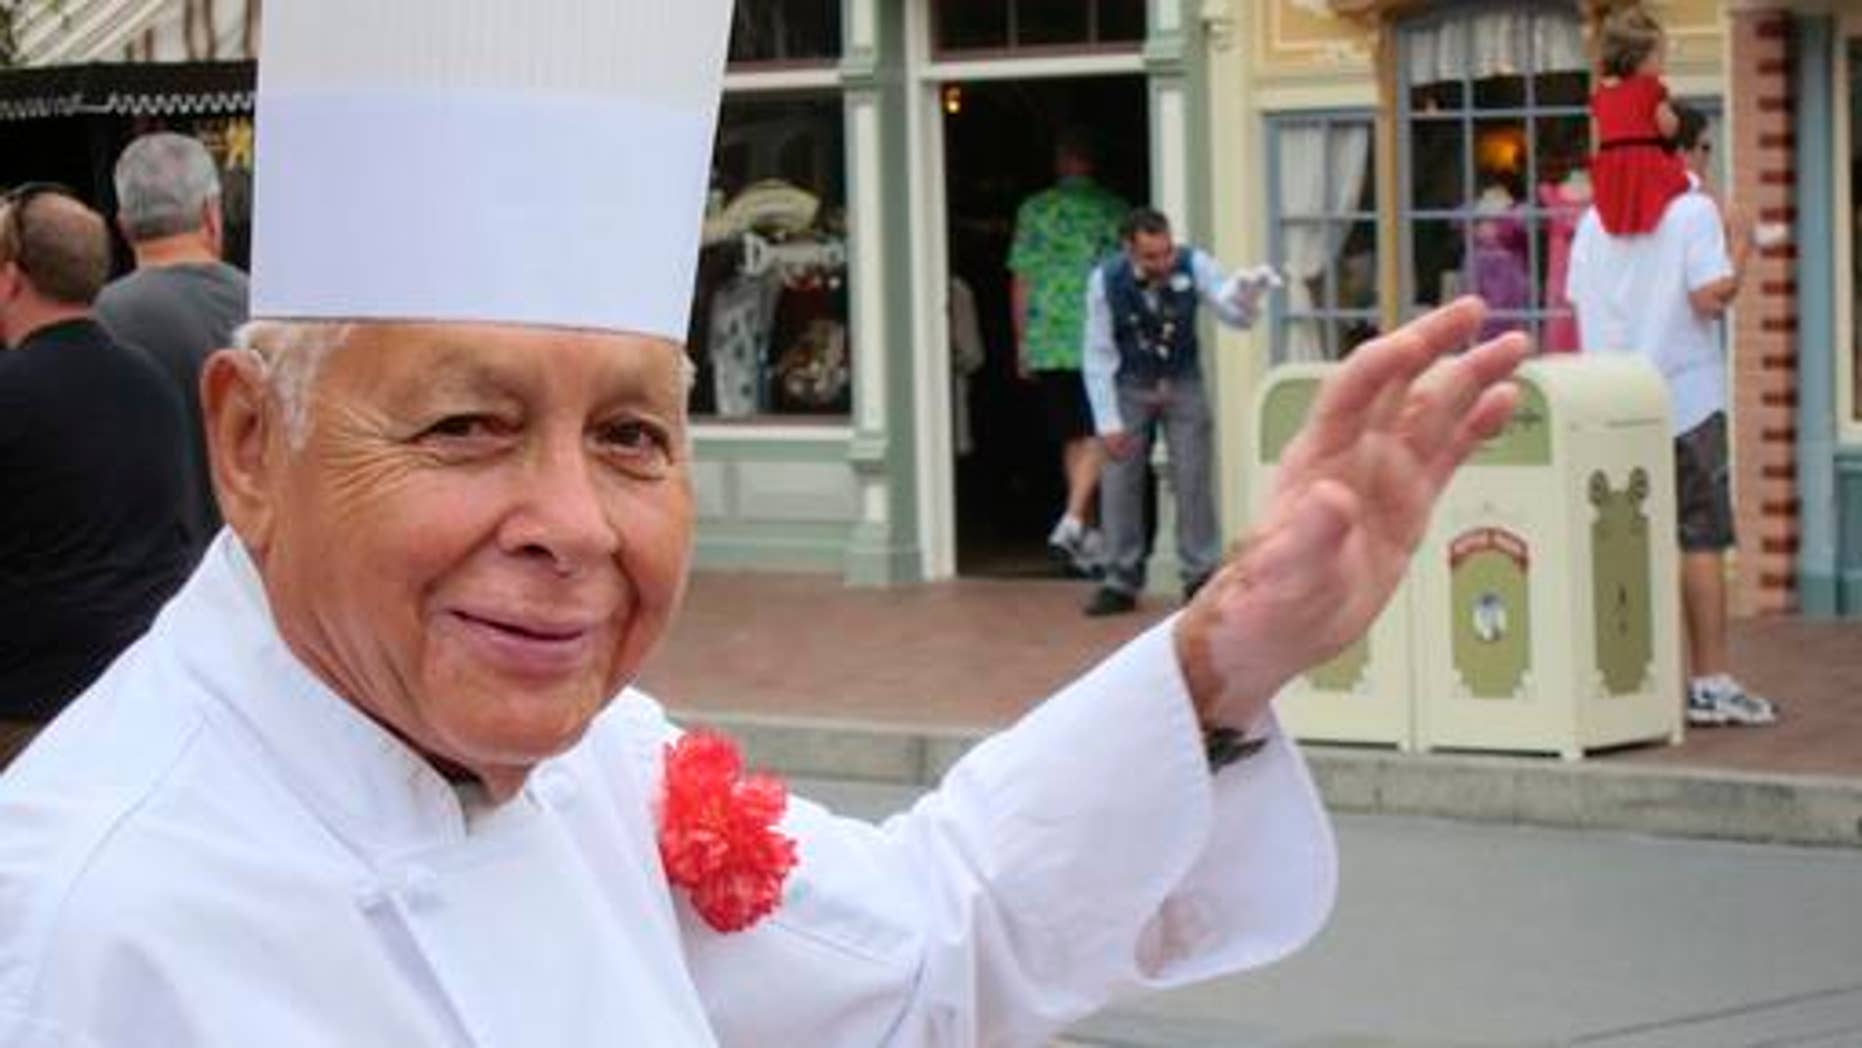 Oscar Martinez greets diners at the Carnation Cafe at Disneyland in Anaheim, Calif. Martinez, 81, is set to celebrate his 60th anniversary at the park  this month.